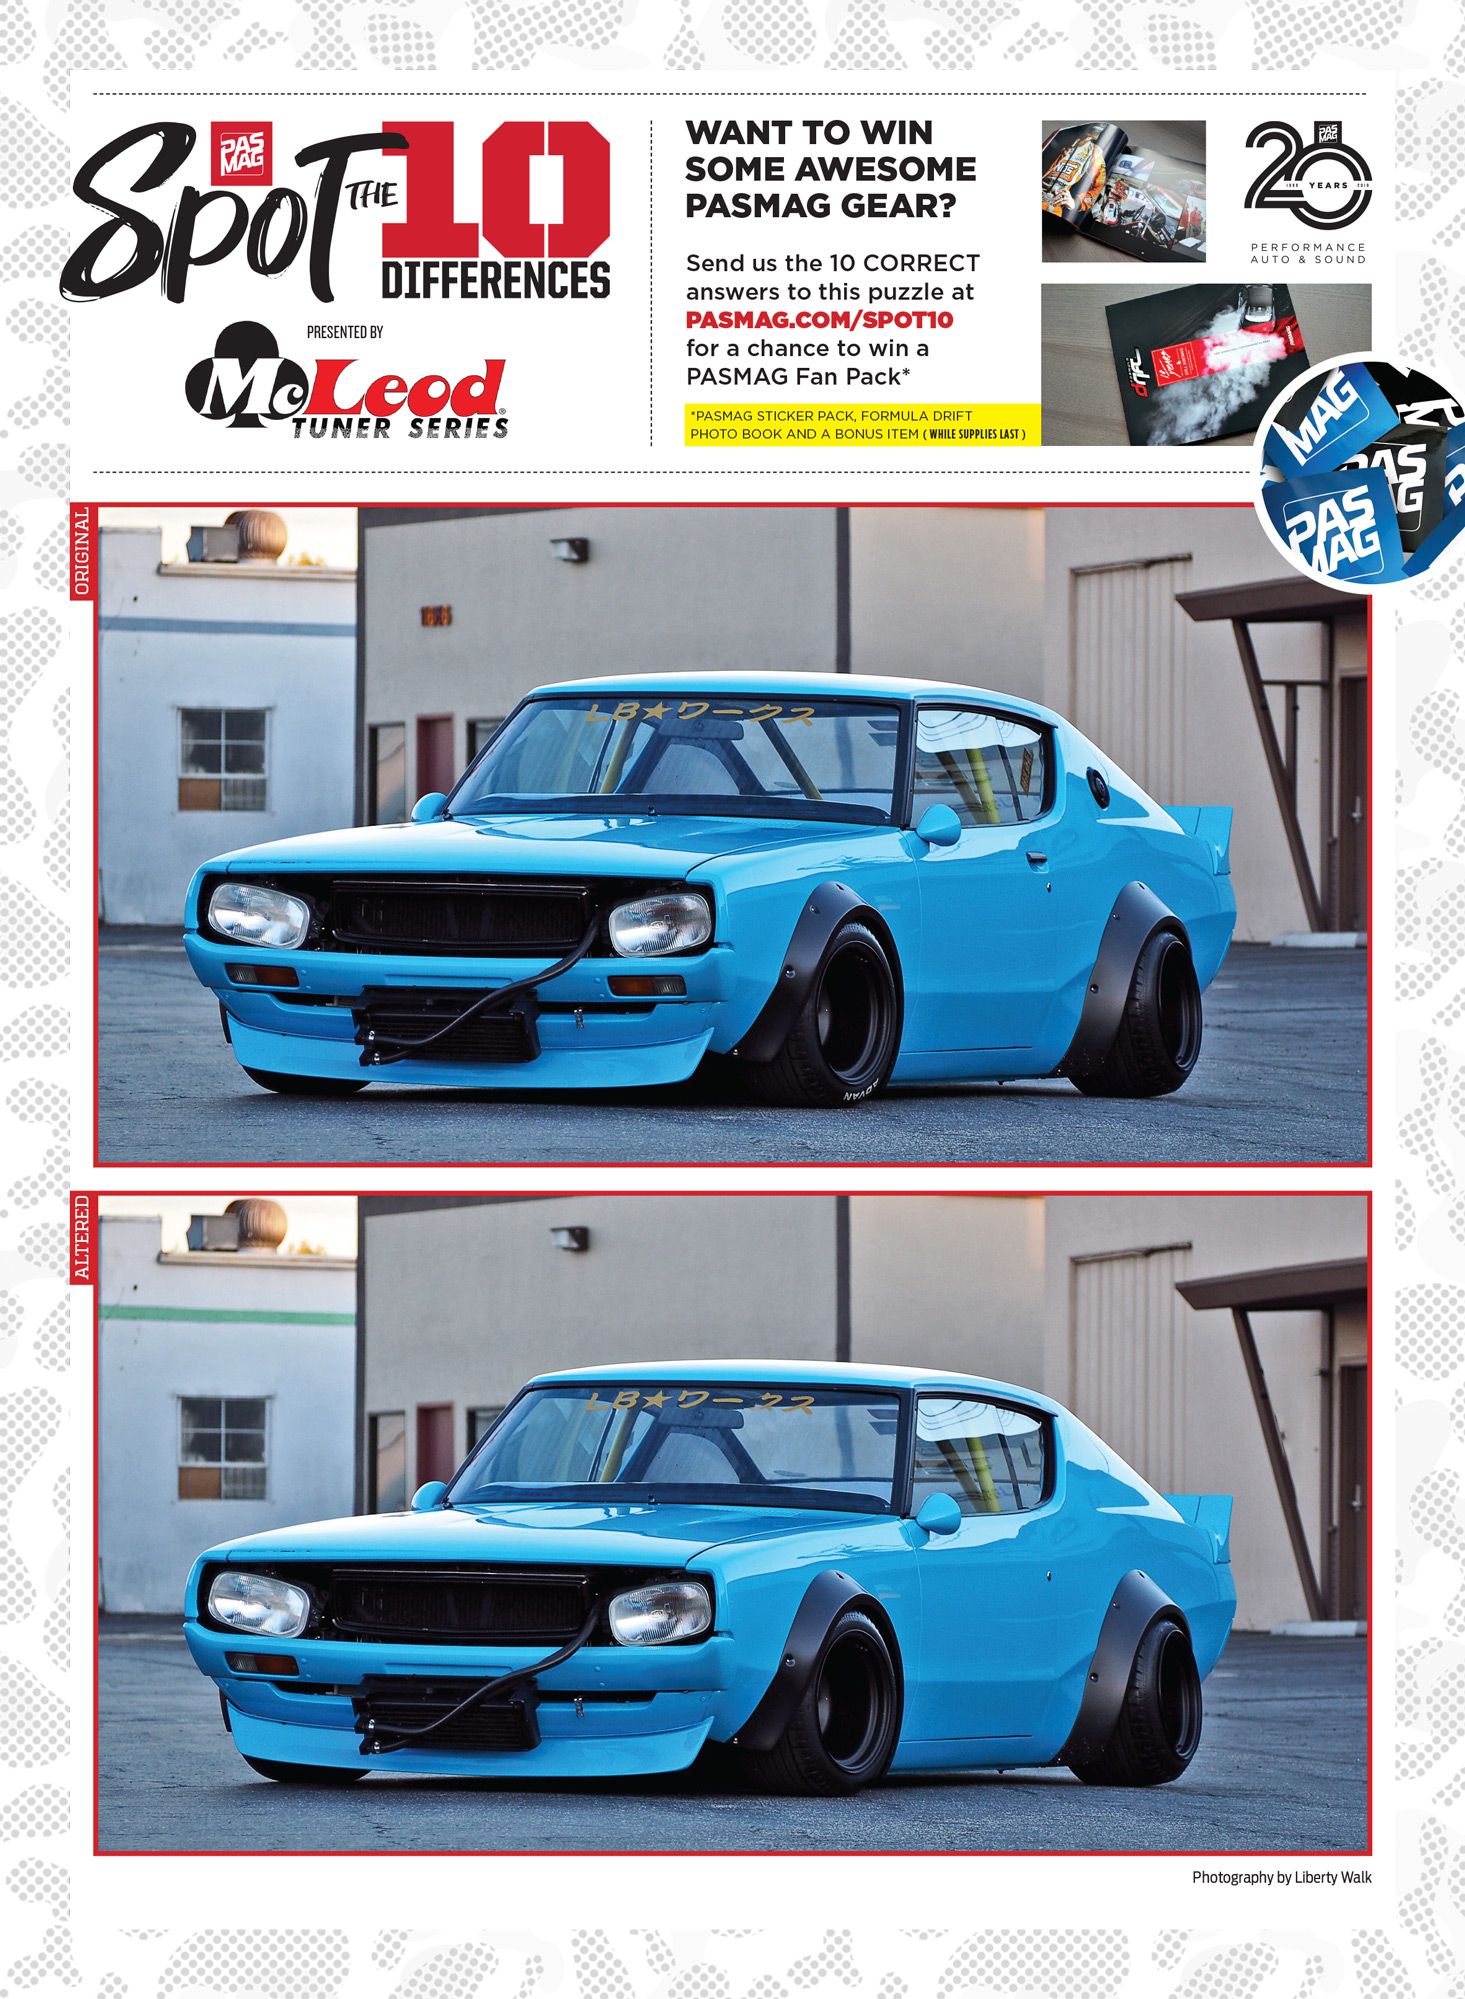 PASMAG Spot the Differences Apr 22 2020 Wataru Kato Nissan Skyline Kenmeri Liberty Walk